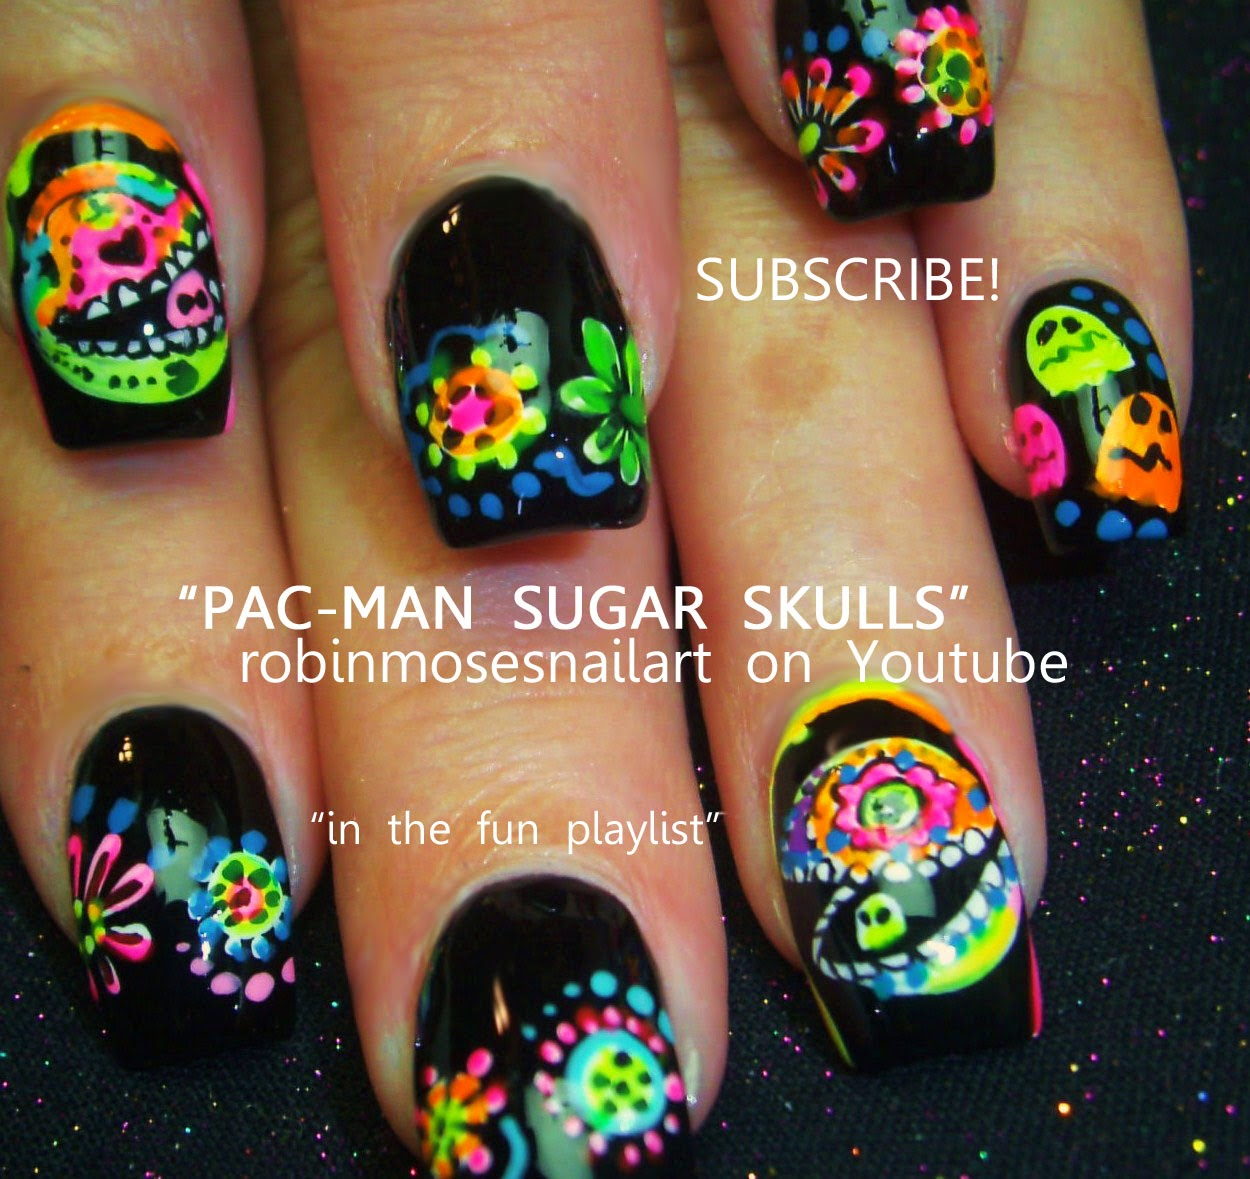 Robin moses nail art skull nails halloween nails red rose nail art tutorials halloween nails diy easy halloween for beginners and up halloween nail art designs tutorial prinsesfo Images